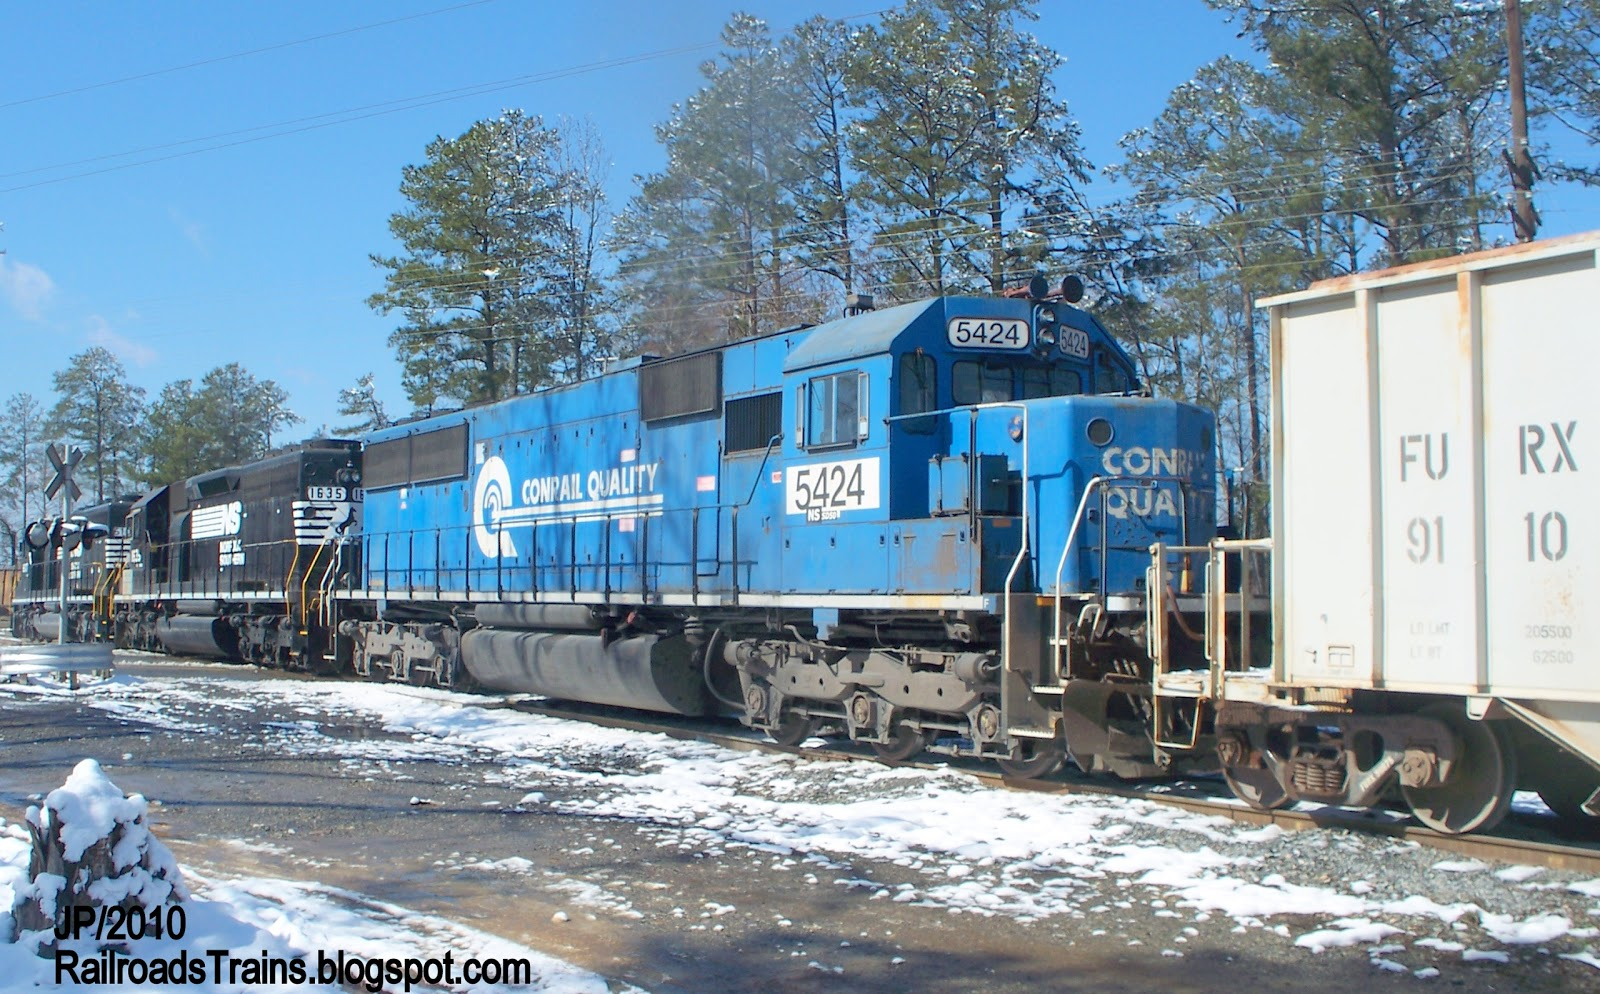 conrail csx A, b, c, d, e, f 1 2 3 4 5 6 7 8, conrail valuation 9 10, valuation in a competitive bidding situation 11 12 13, csx1, csx -- value of synergies 14, csx2, csx -- value of synergies plus loss if rival gets it 15, ns, norfolk southern -- value of synergies plus loss if rival gets it 16.